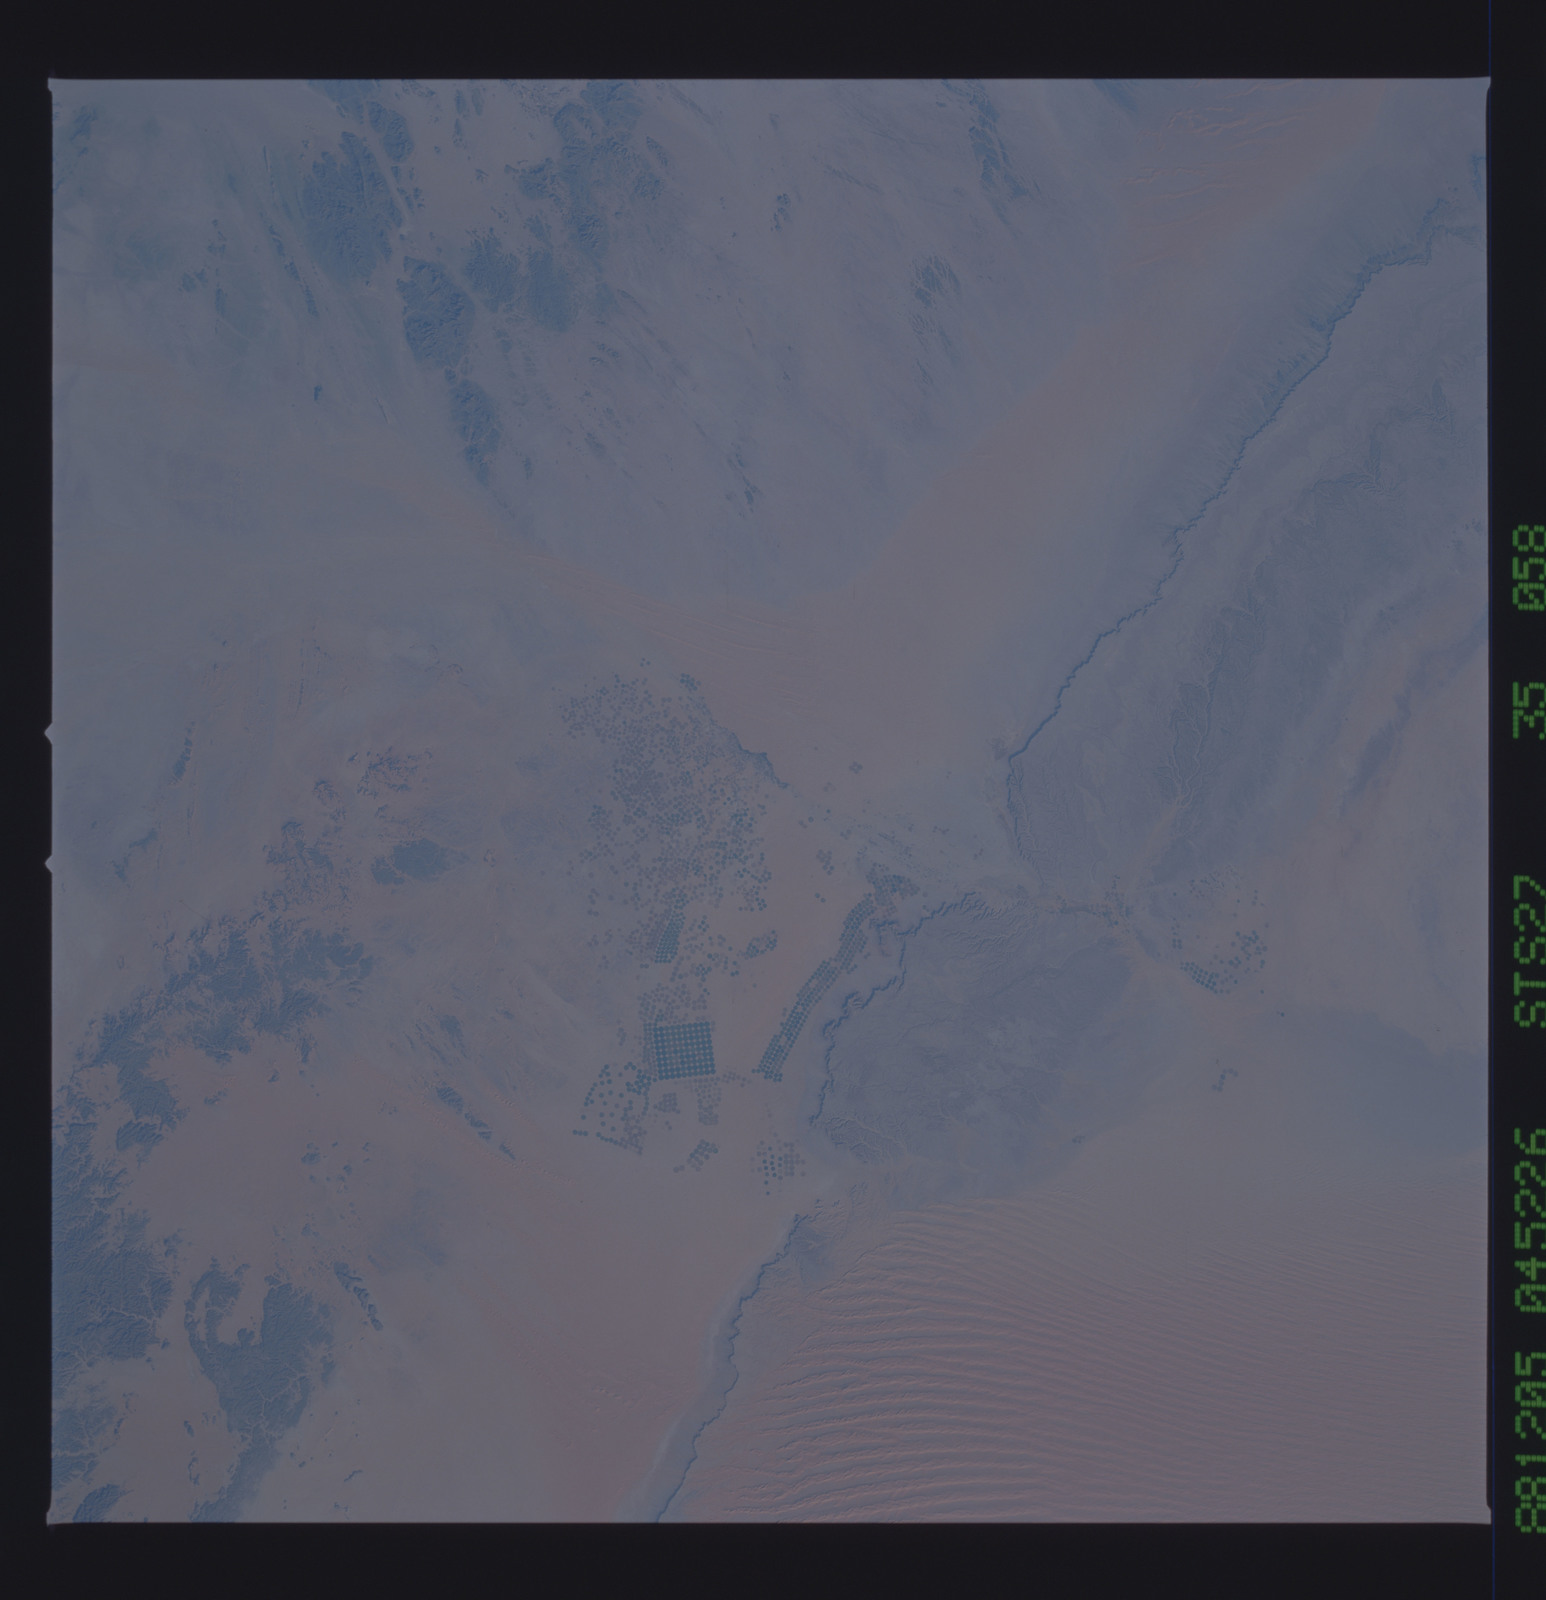 S27-35-058 - STS-027 - STS-27 earth observations